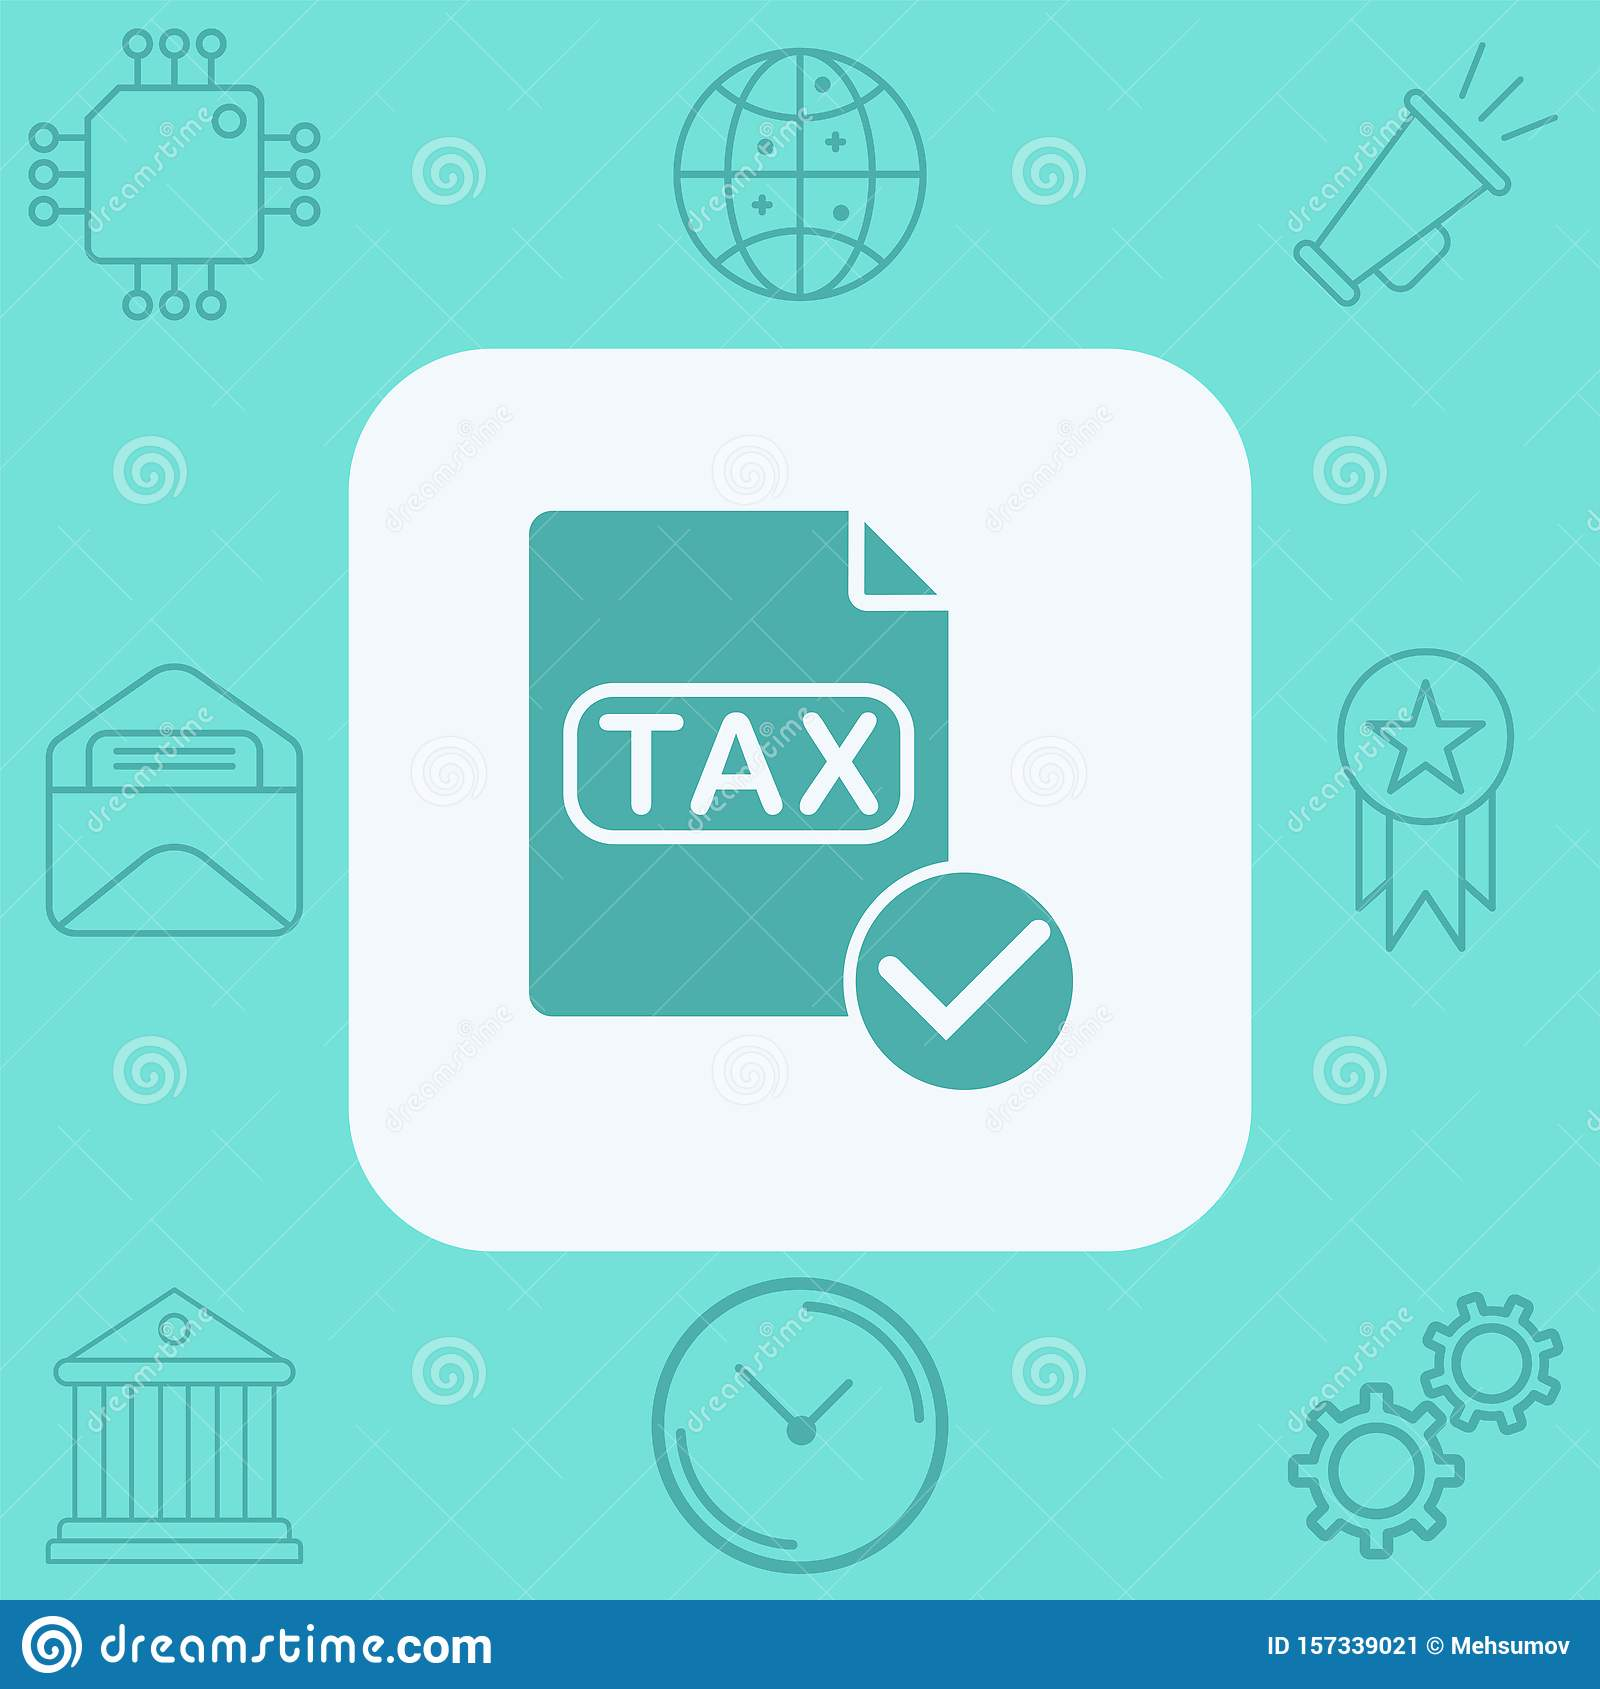 Tax Vector Icon Sign Symbol Stock Illustration